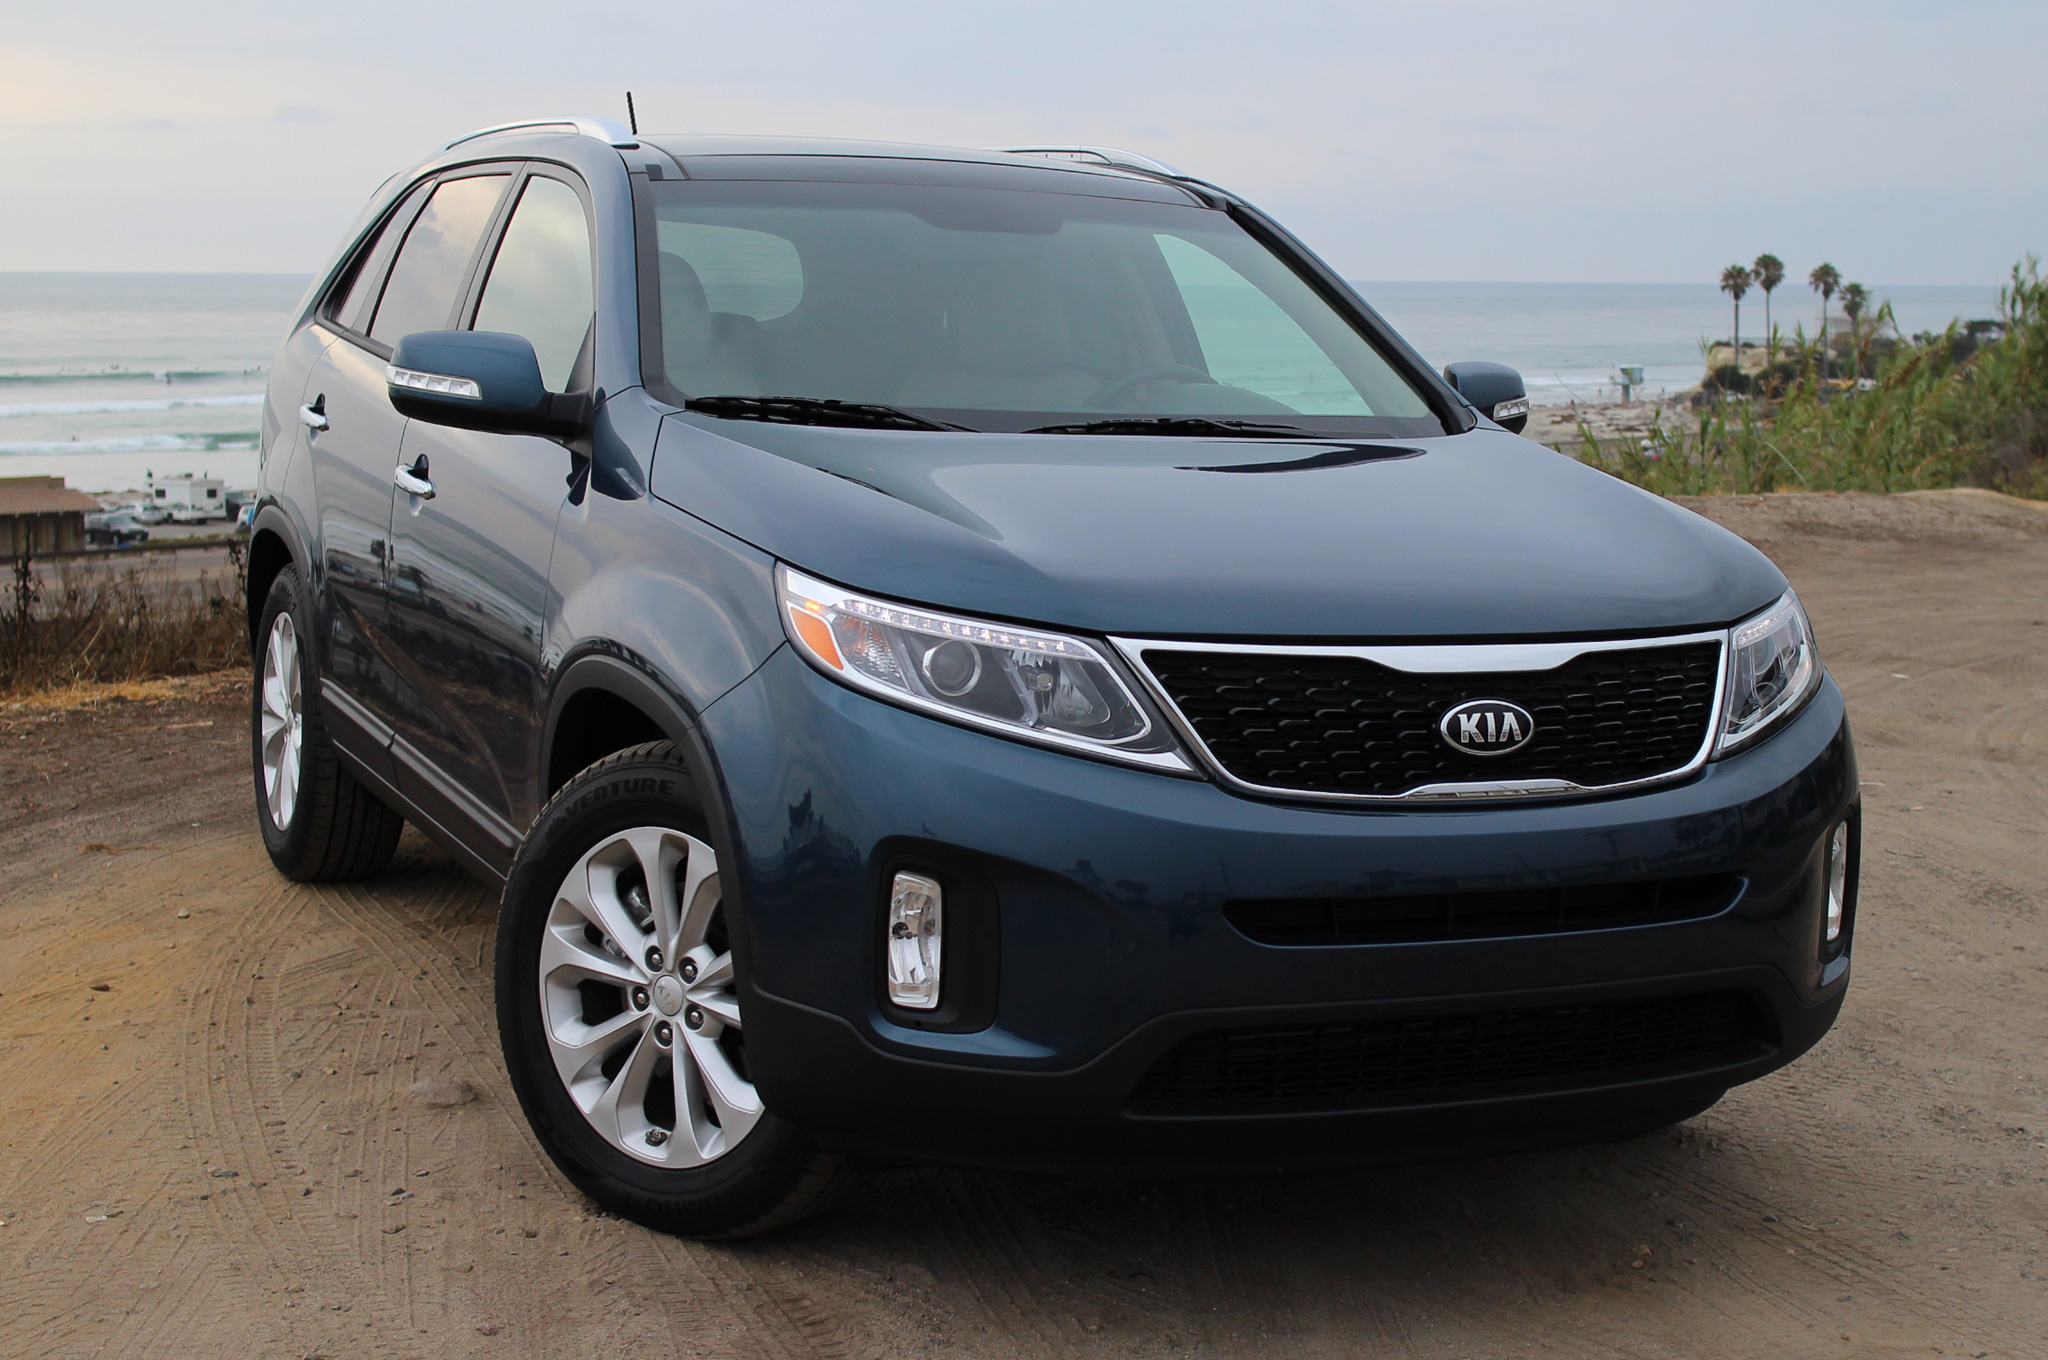 Marvelous Our Cars: 2014 Kia Sorento EX   Sorry About That Last One